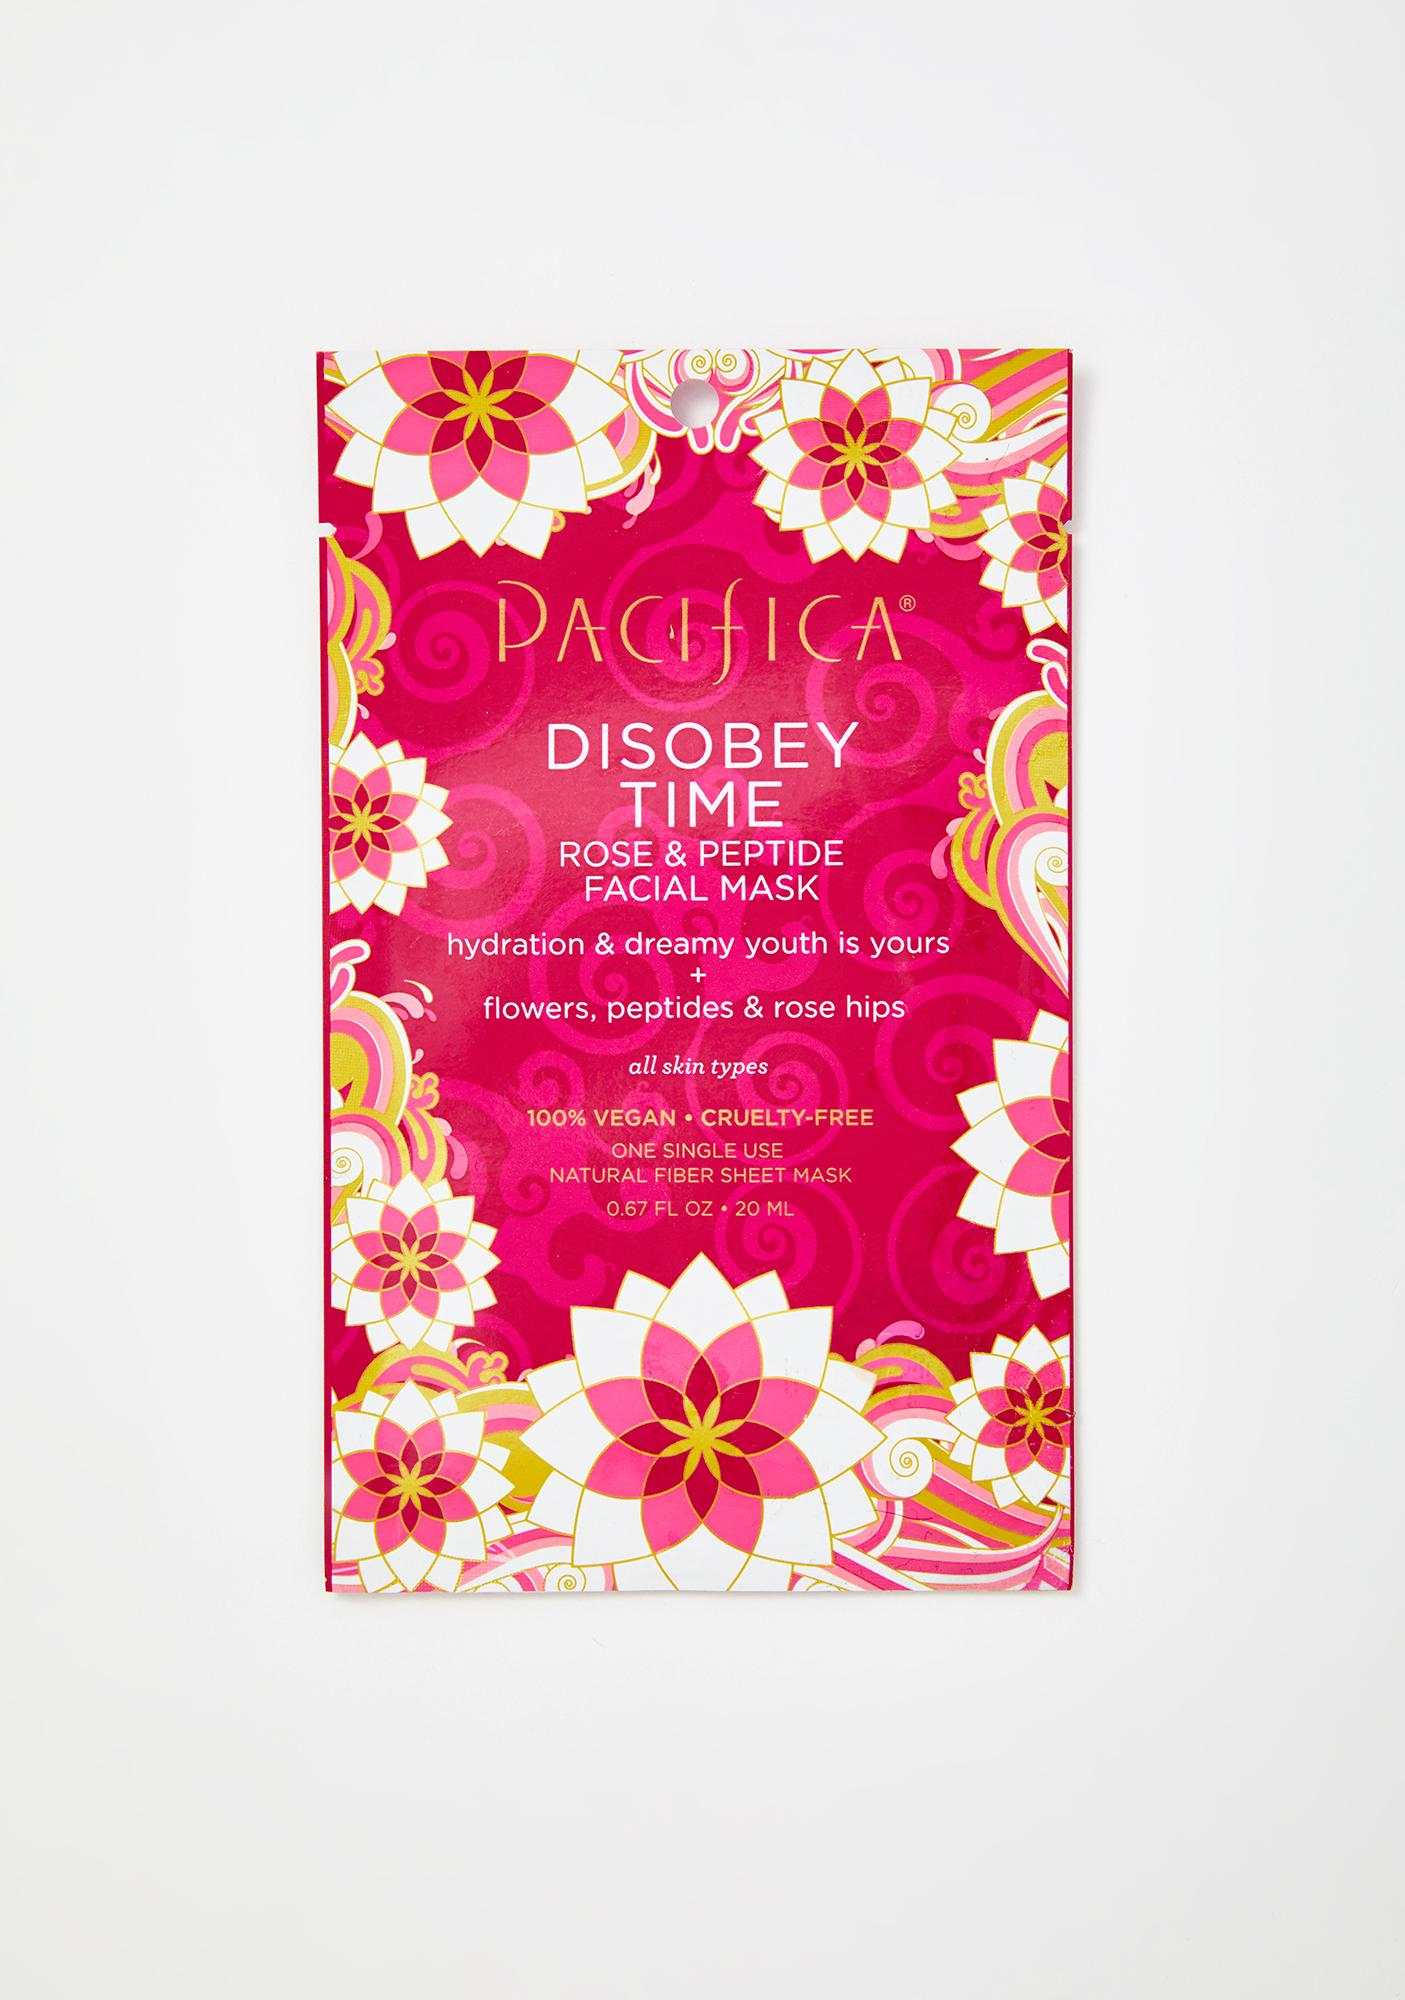 Pacifica Disobey Time Rose N Peptide Face Mask